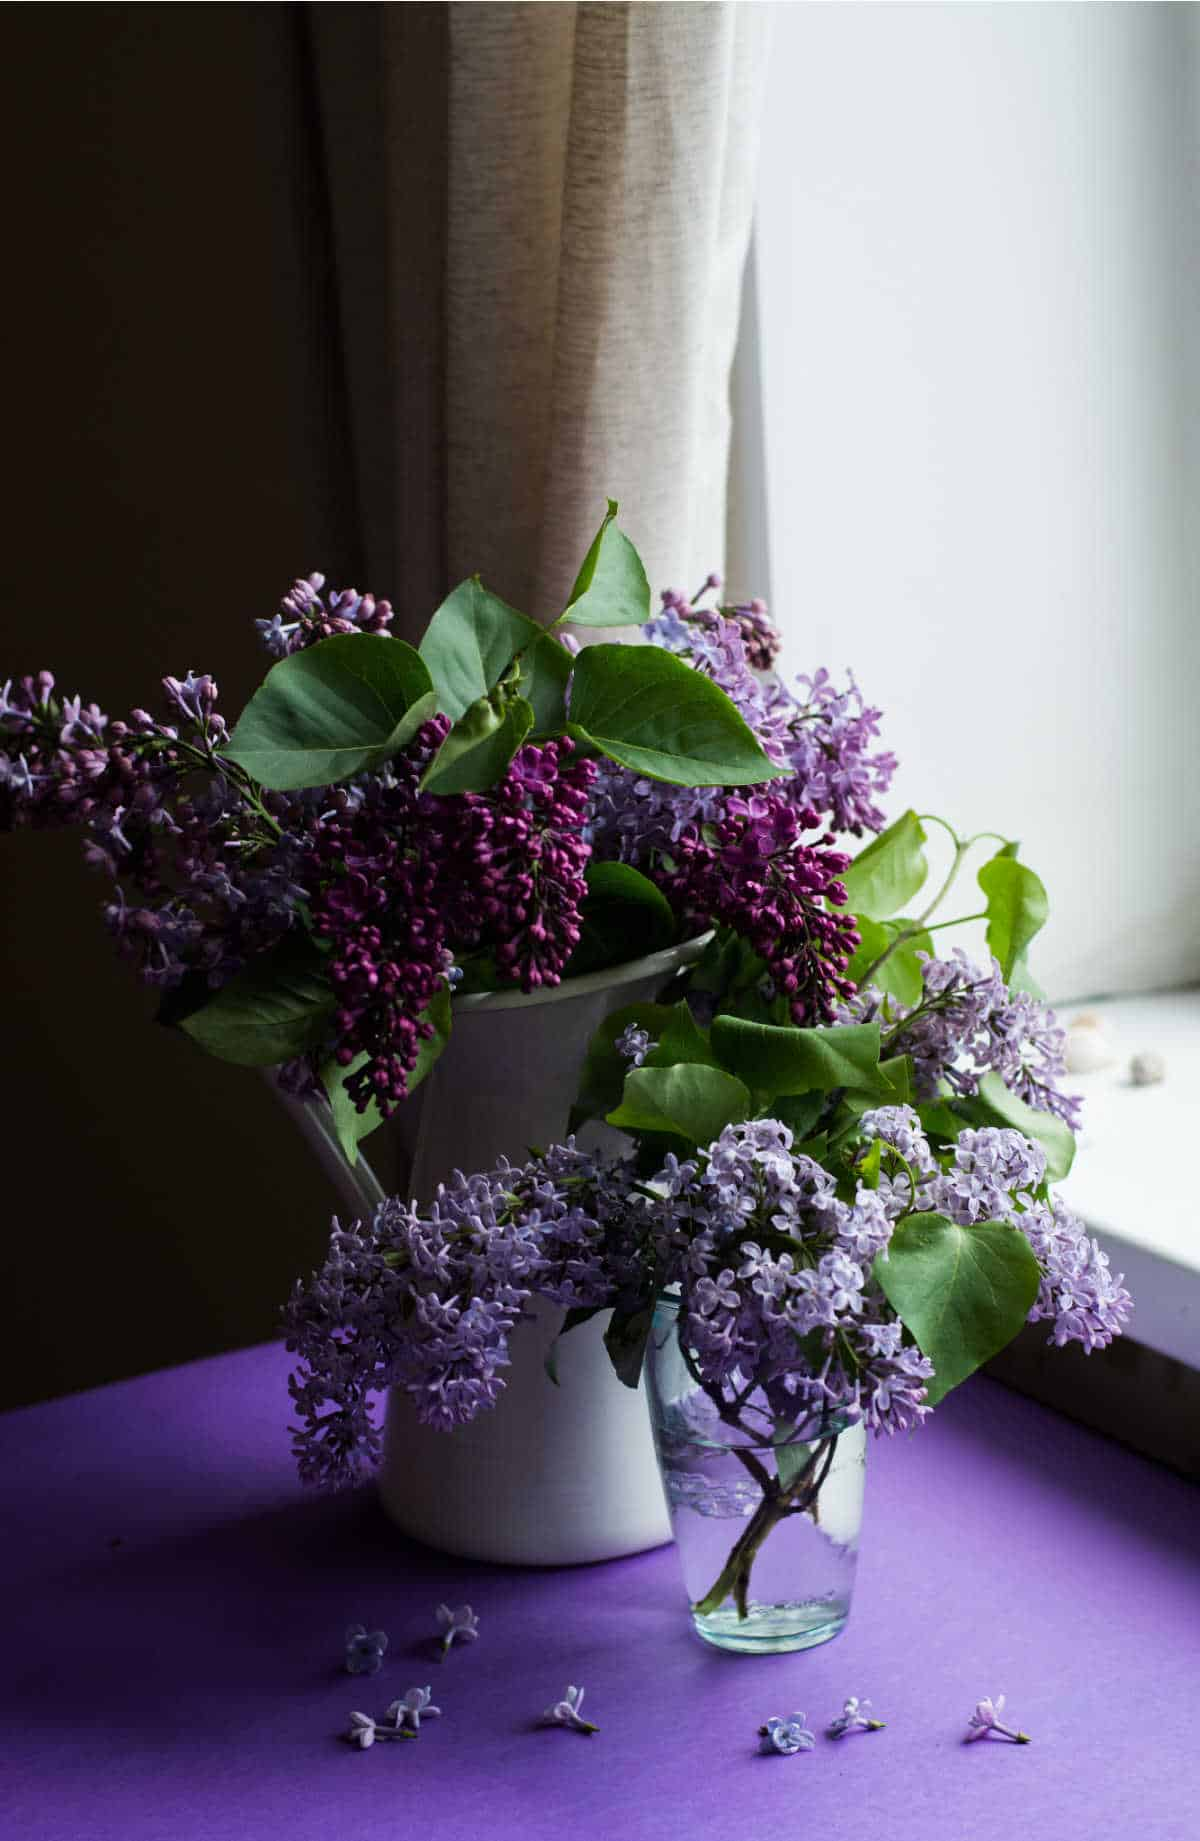 lilacs in a vase on a purple cloth